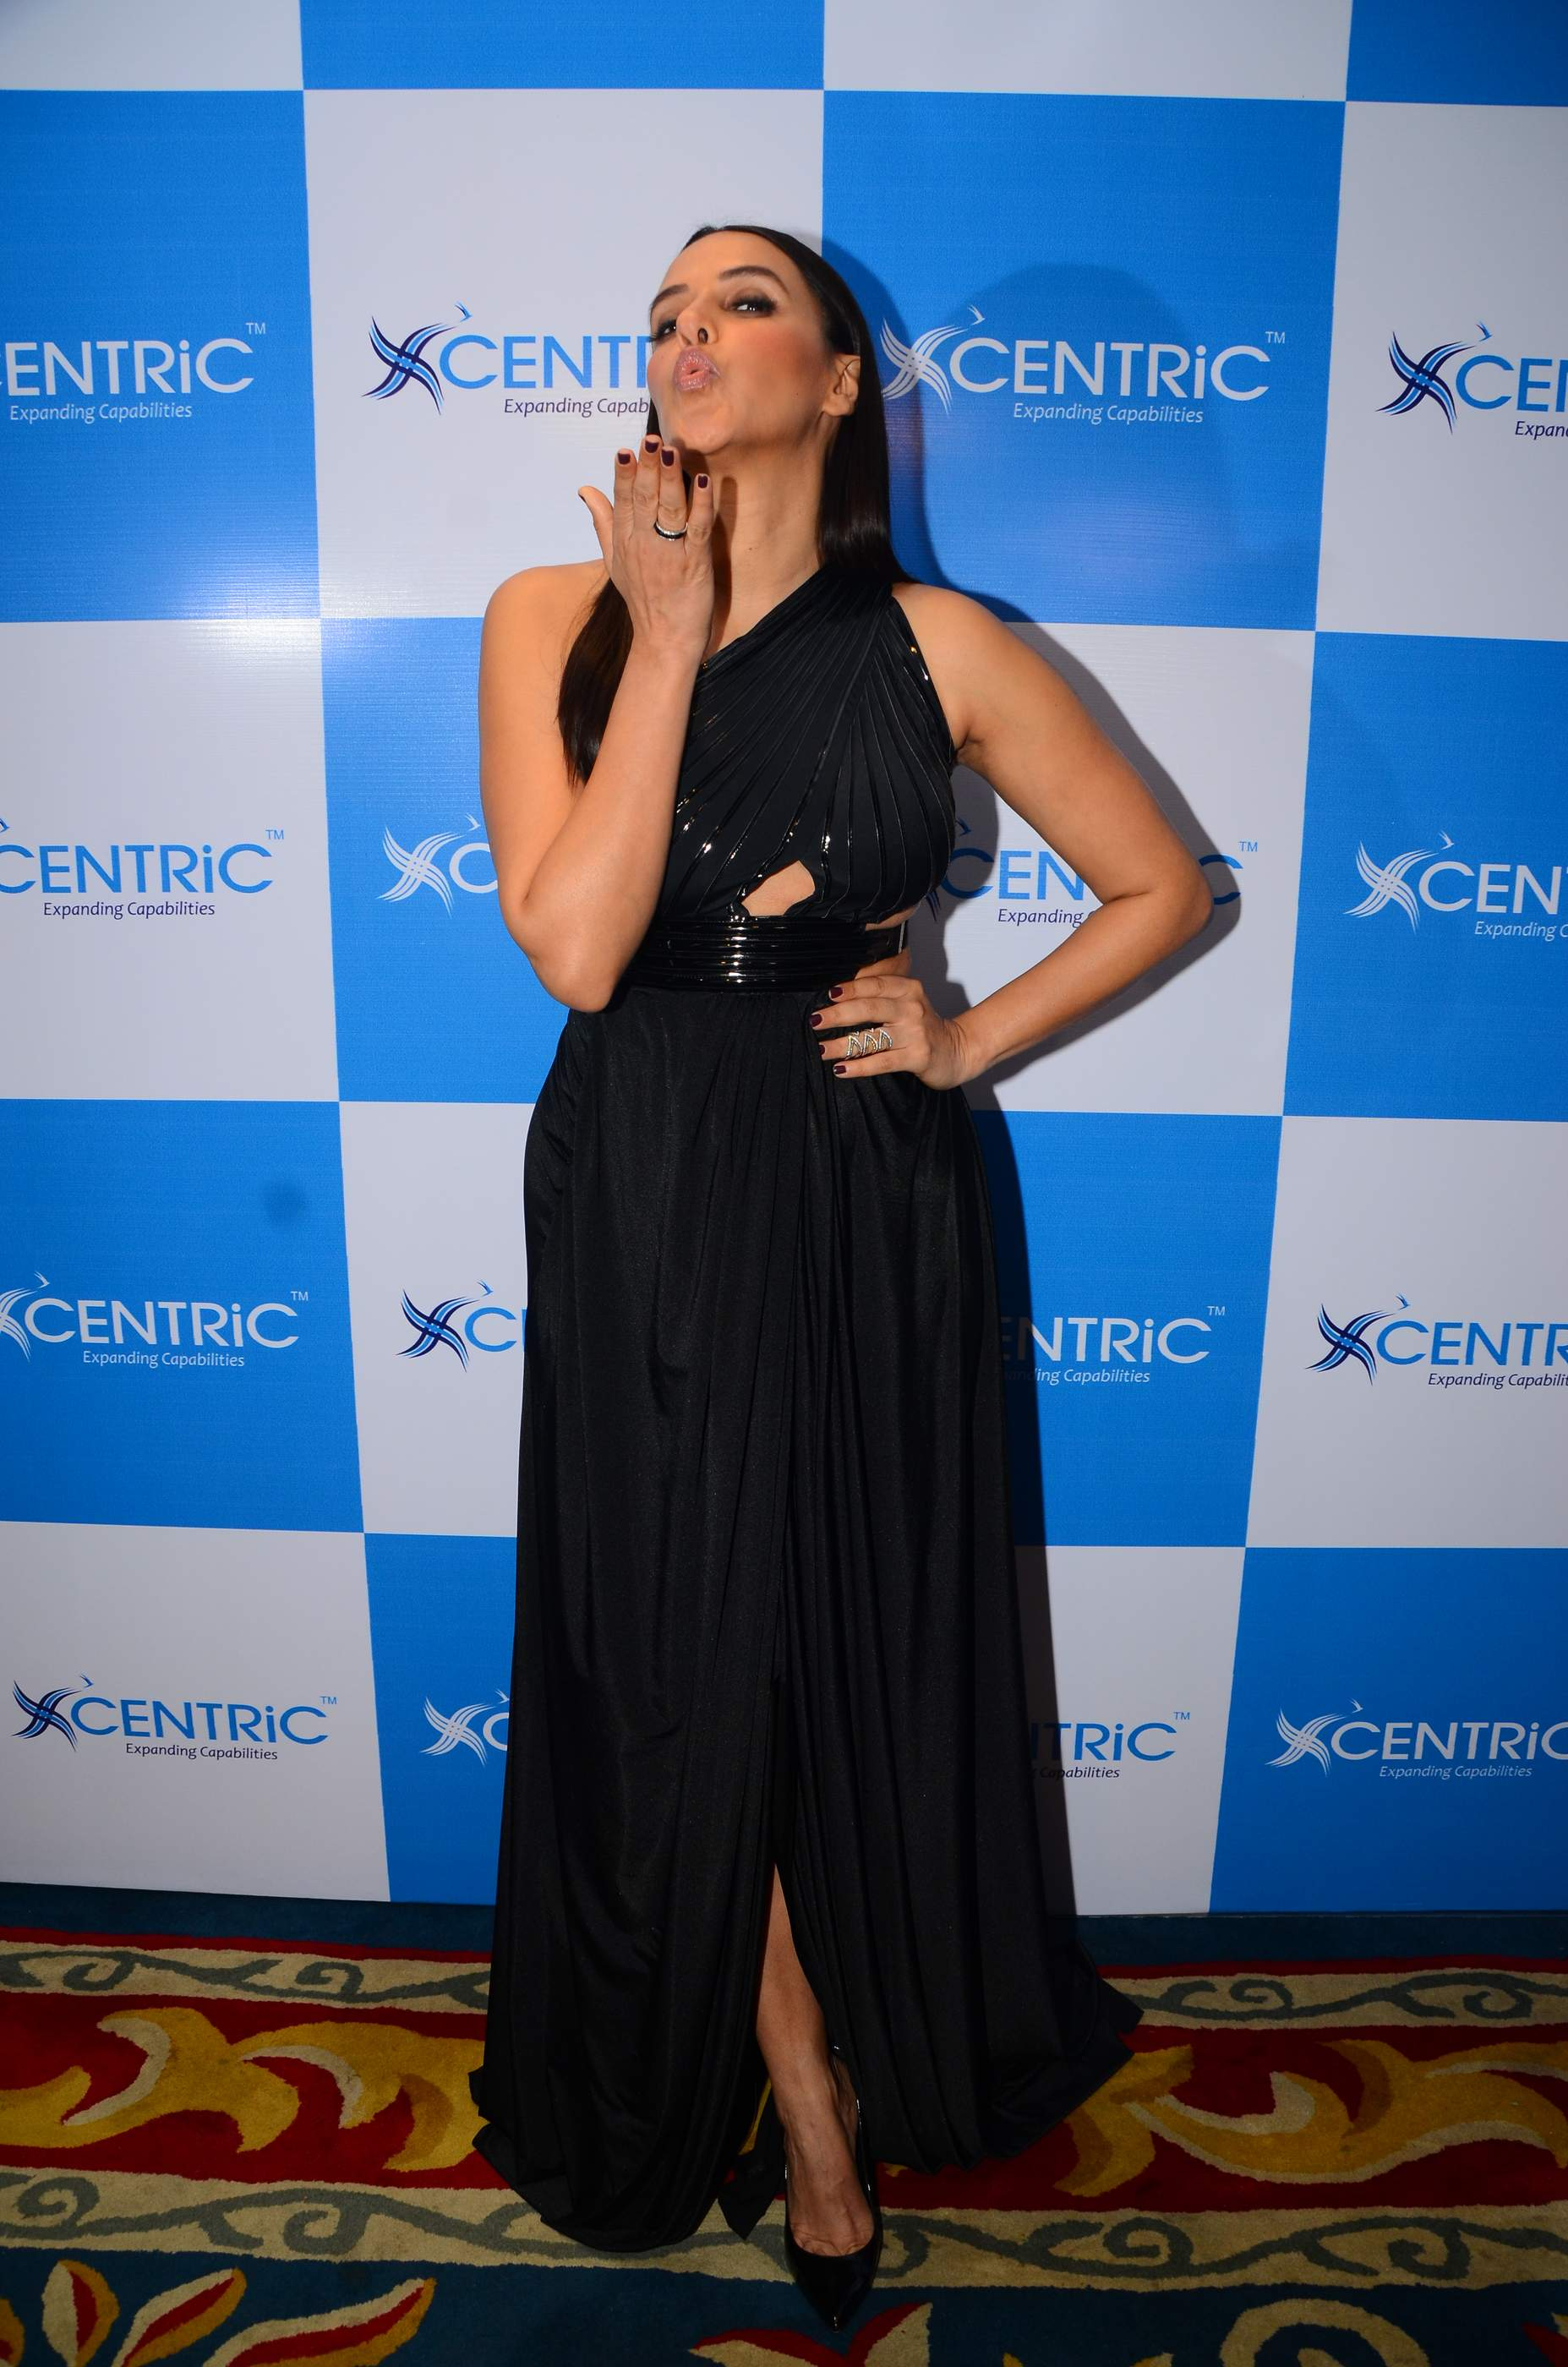 HOT Photo Stills Of Beauty Queen Neha Dhupia | Xcentric HOT Photo Stills Of Beauty Queen Neha Dhupia | Xcentric Neha Dhupia Xcentric 17